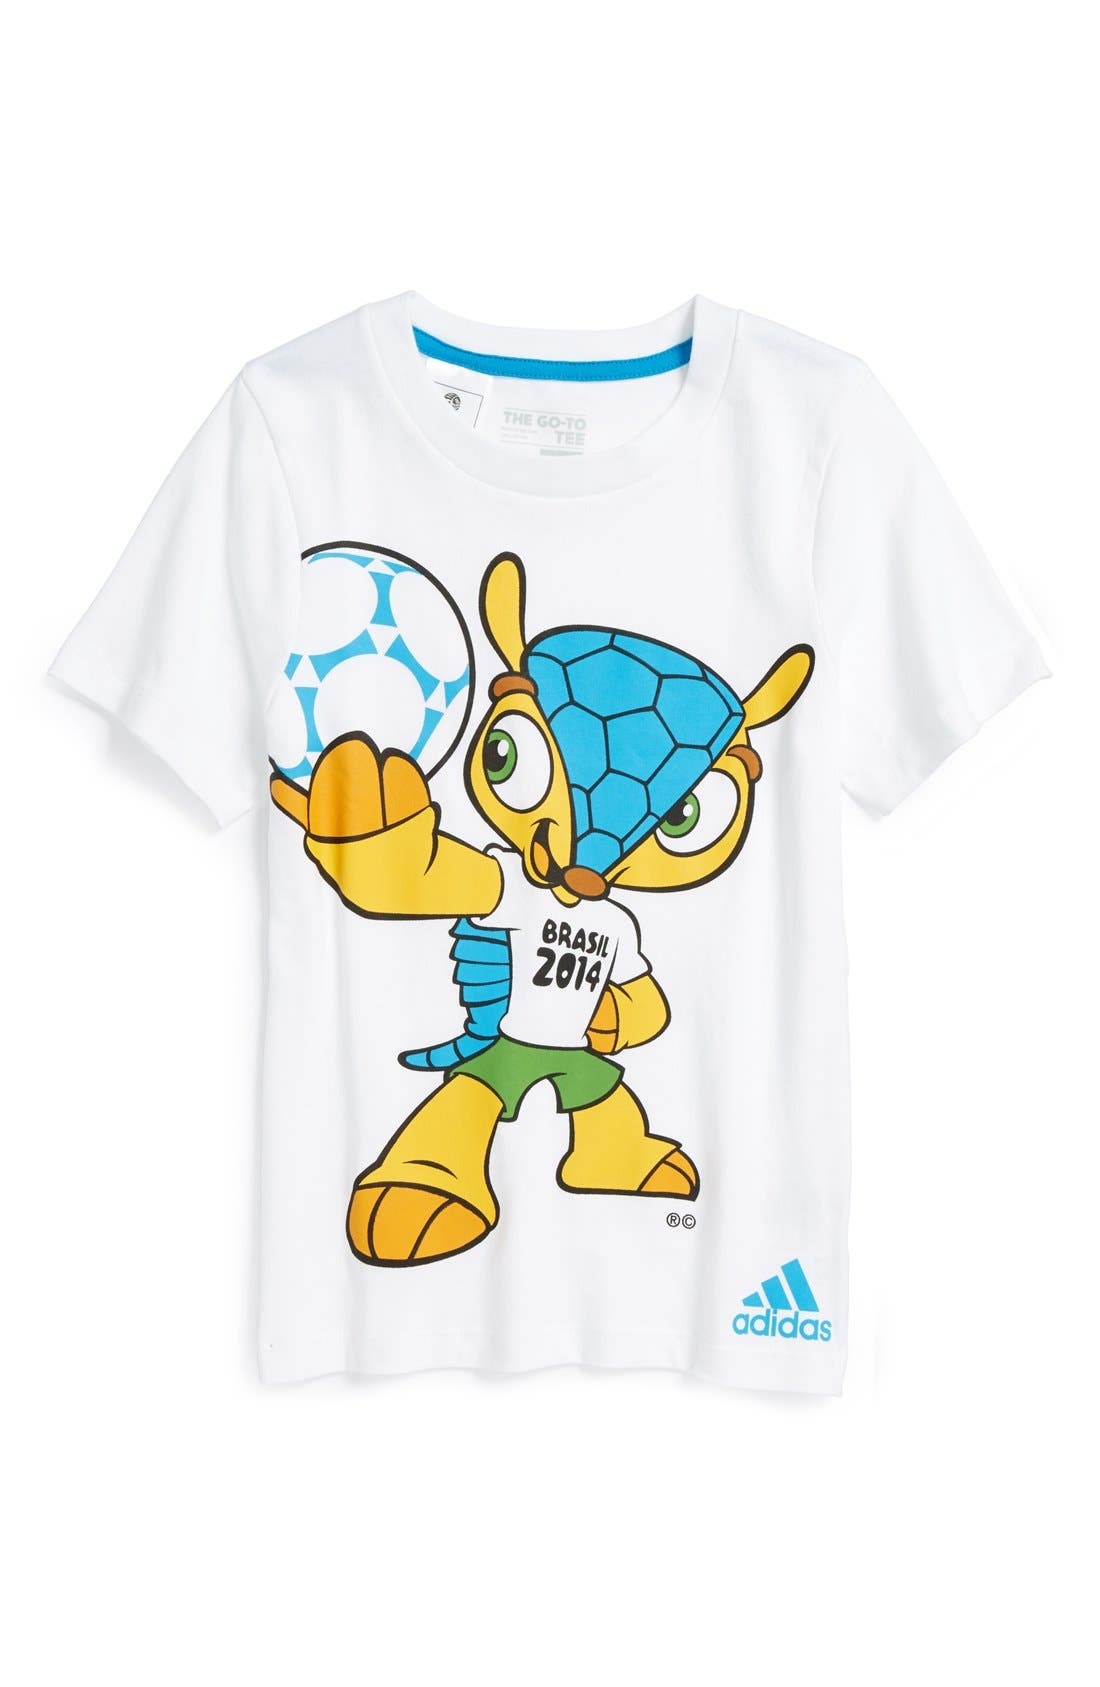 Main Image - adidas 'Fuleco - 2014 FIFA World Cup Brasil™' Graphic T-Shirt (Little Boys)